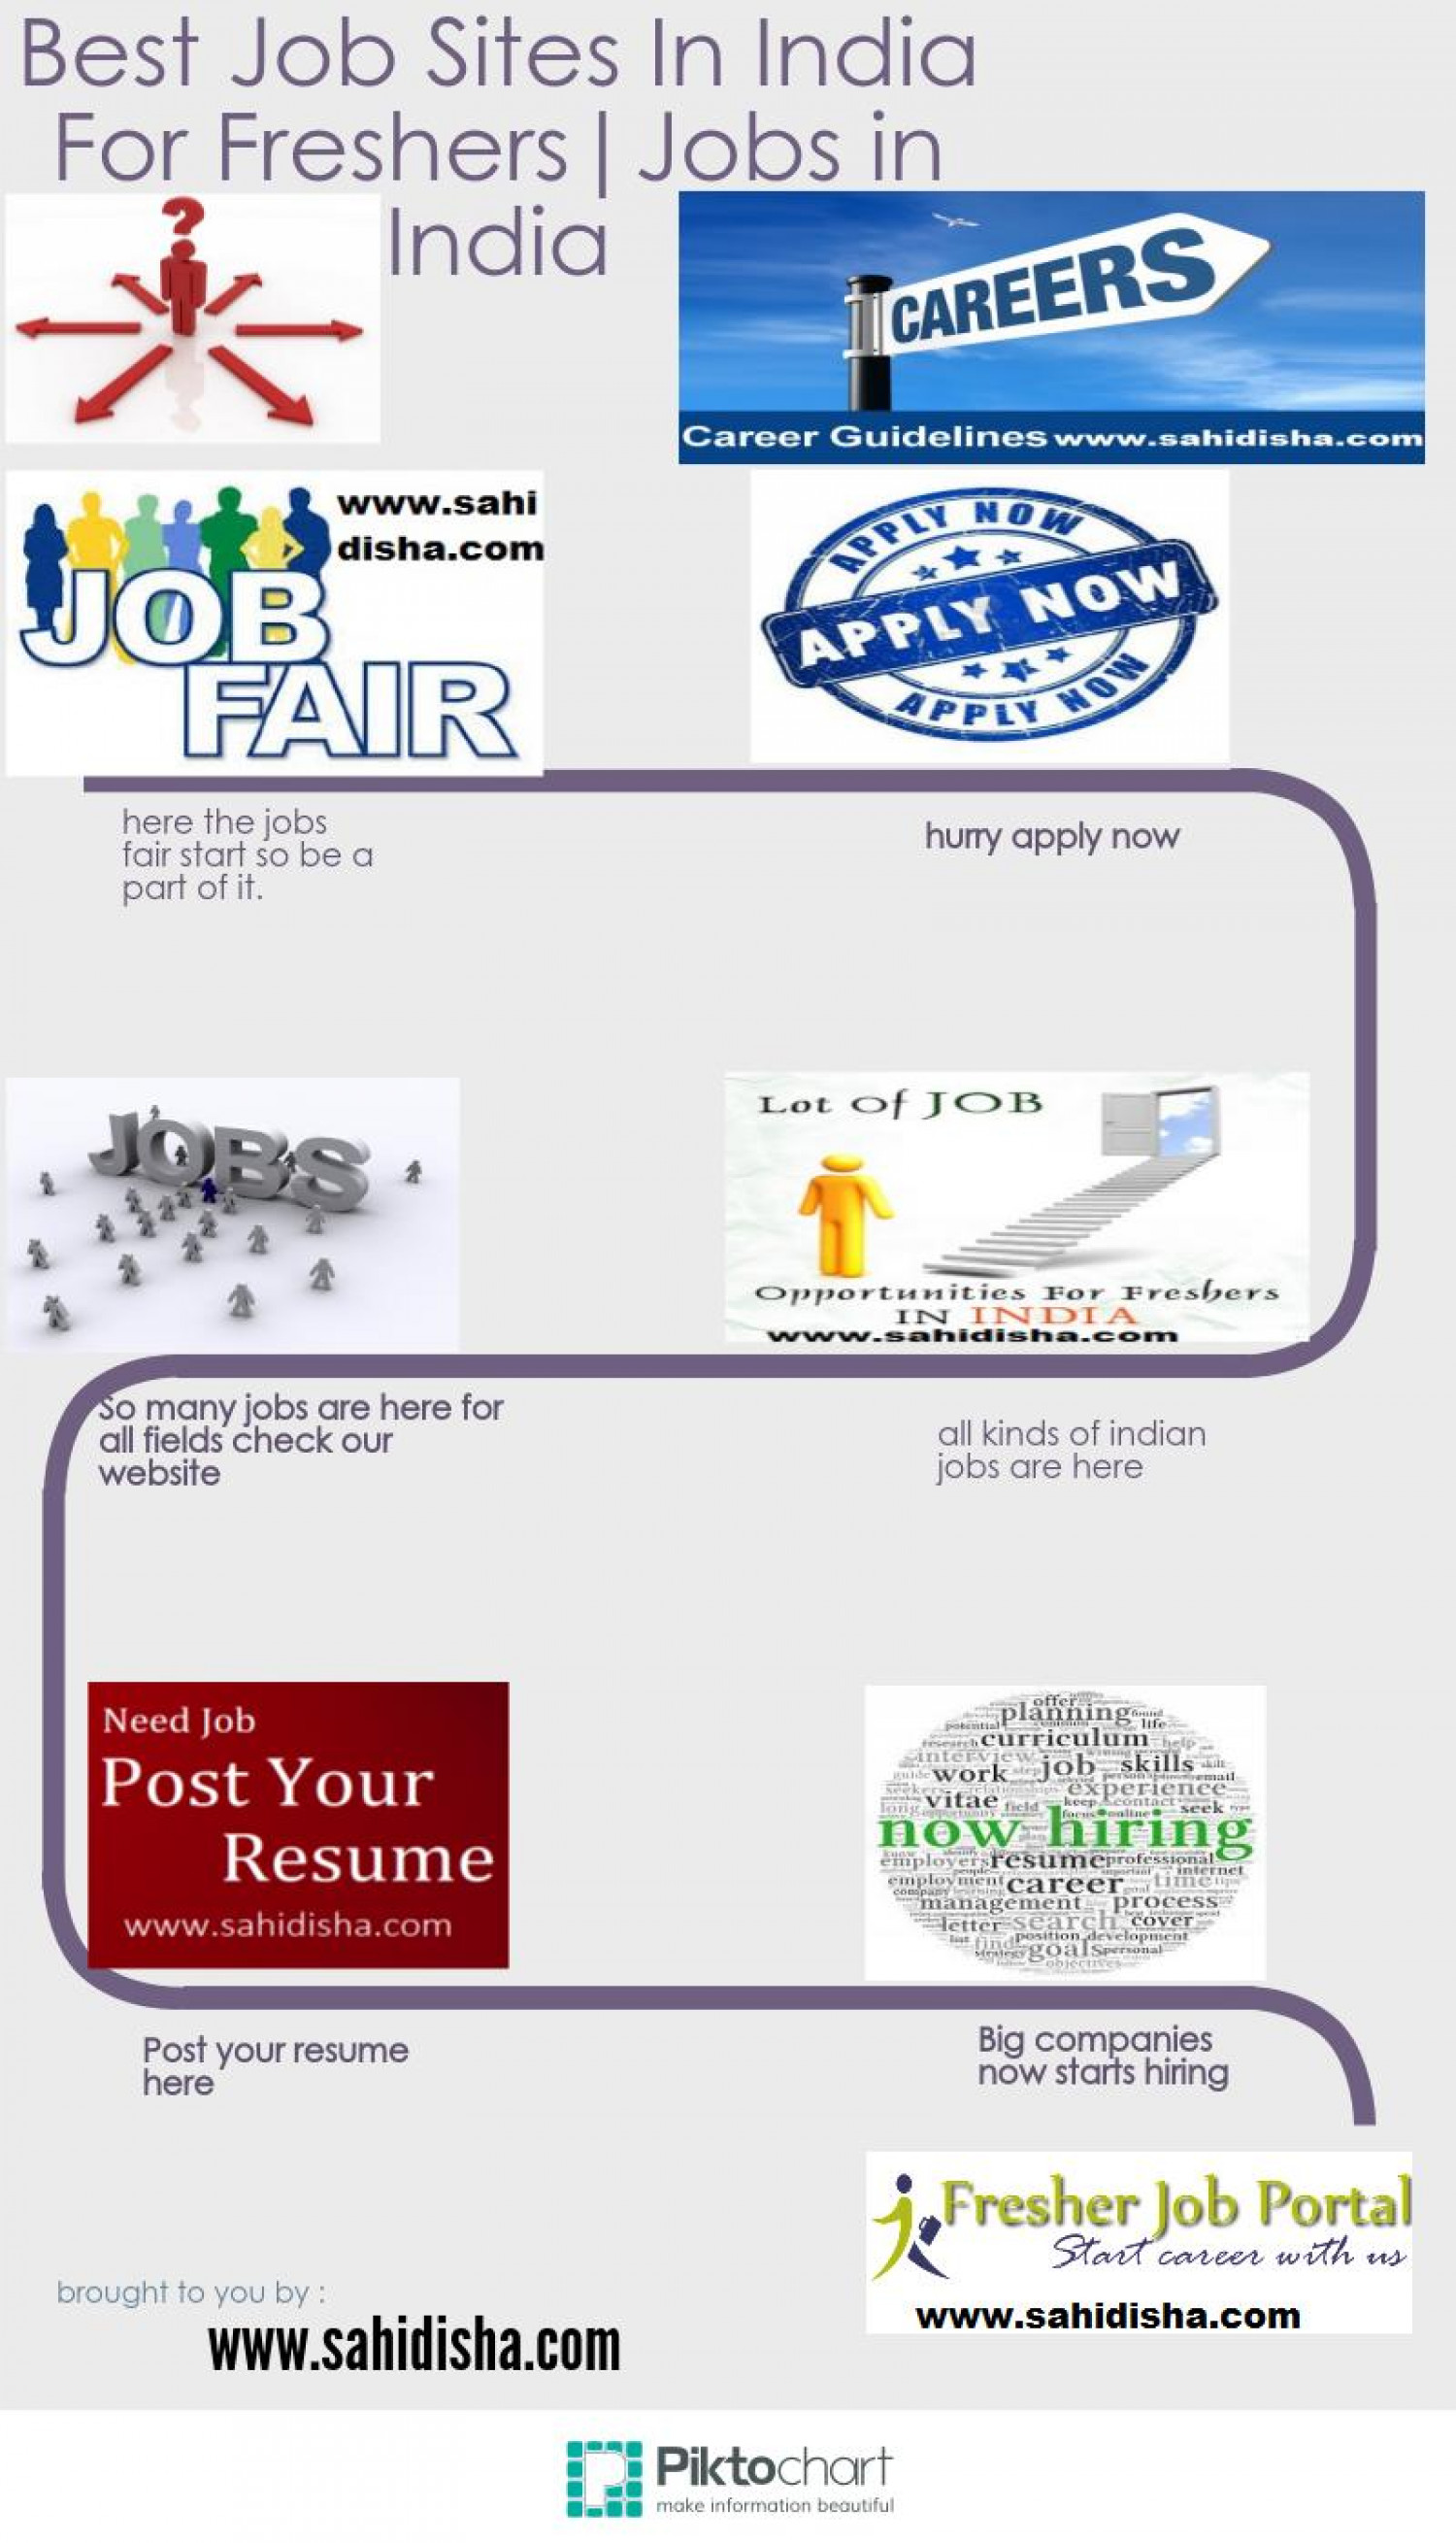 Jobs Sites In India|Jobs Portals In India | Visual.ly